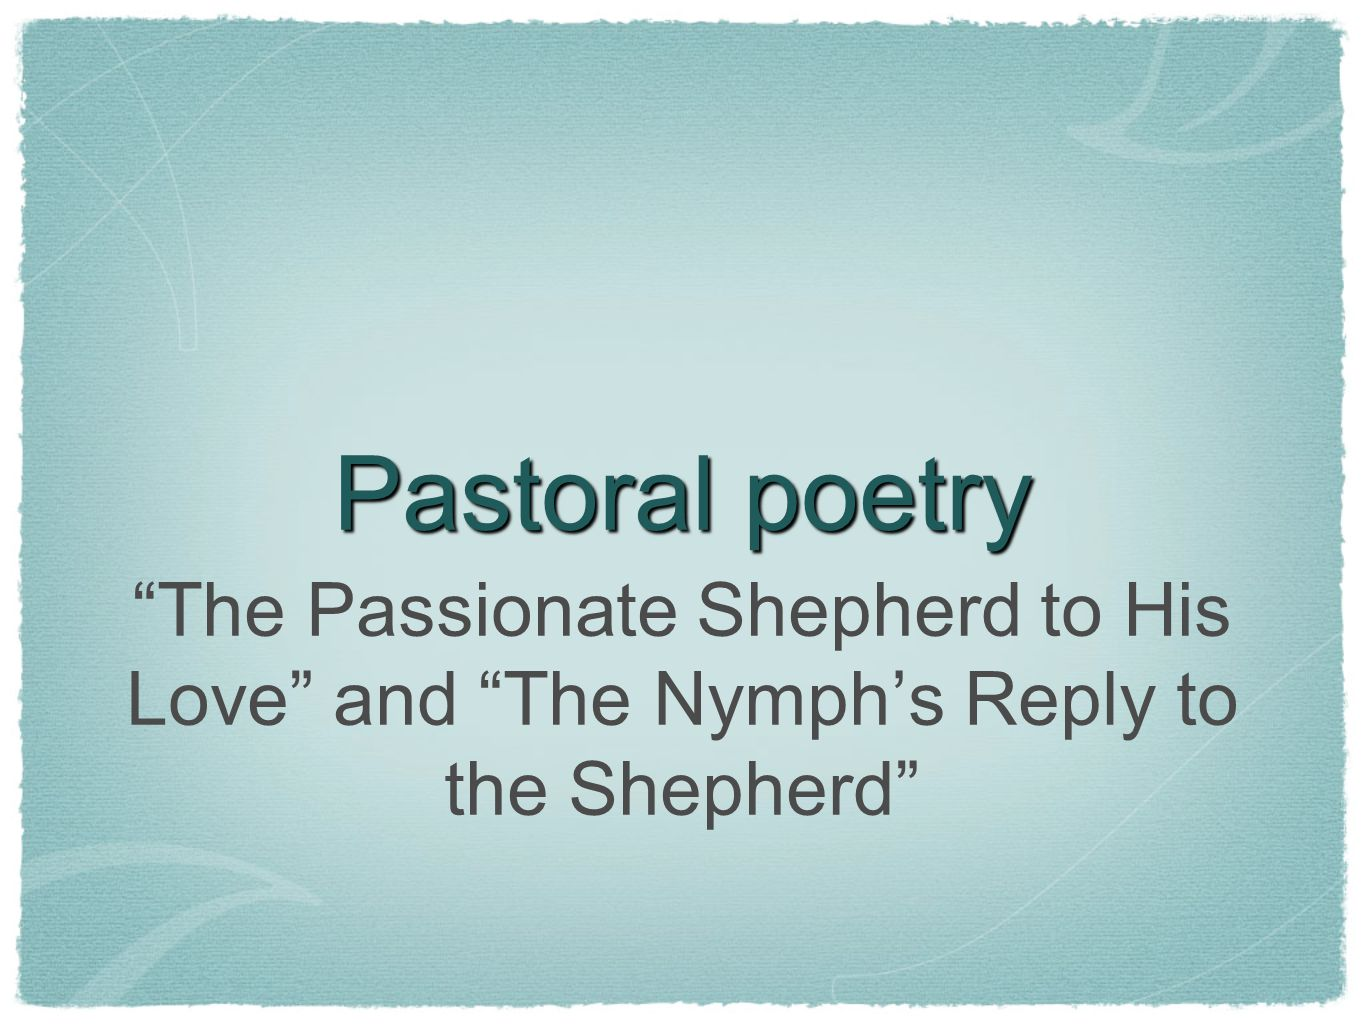 Pastoral poetry The Passionate Shepherd to His Love and The Nymph's Reply to the Shepherd